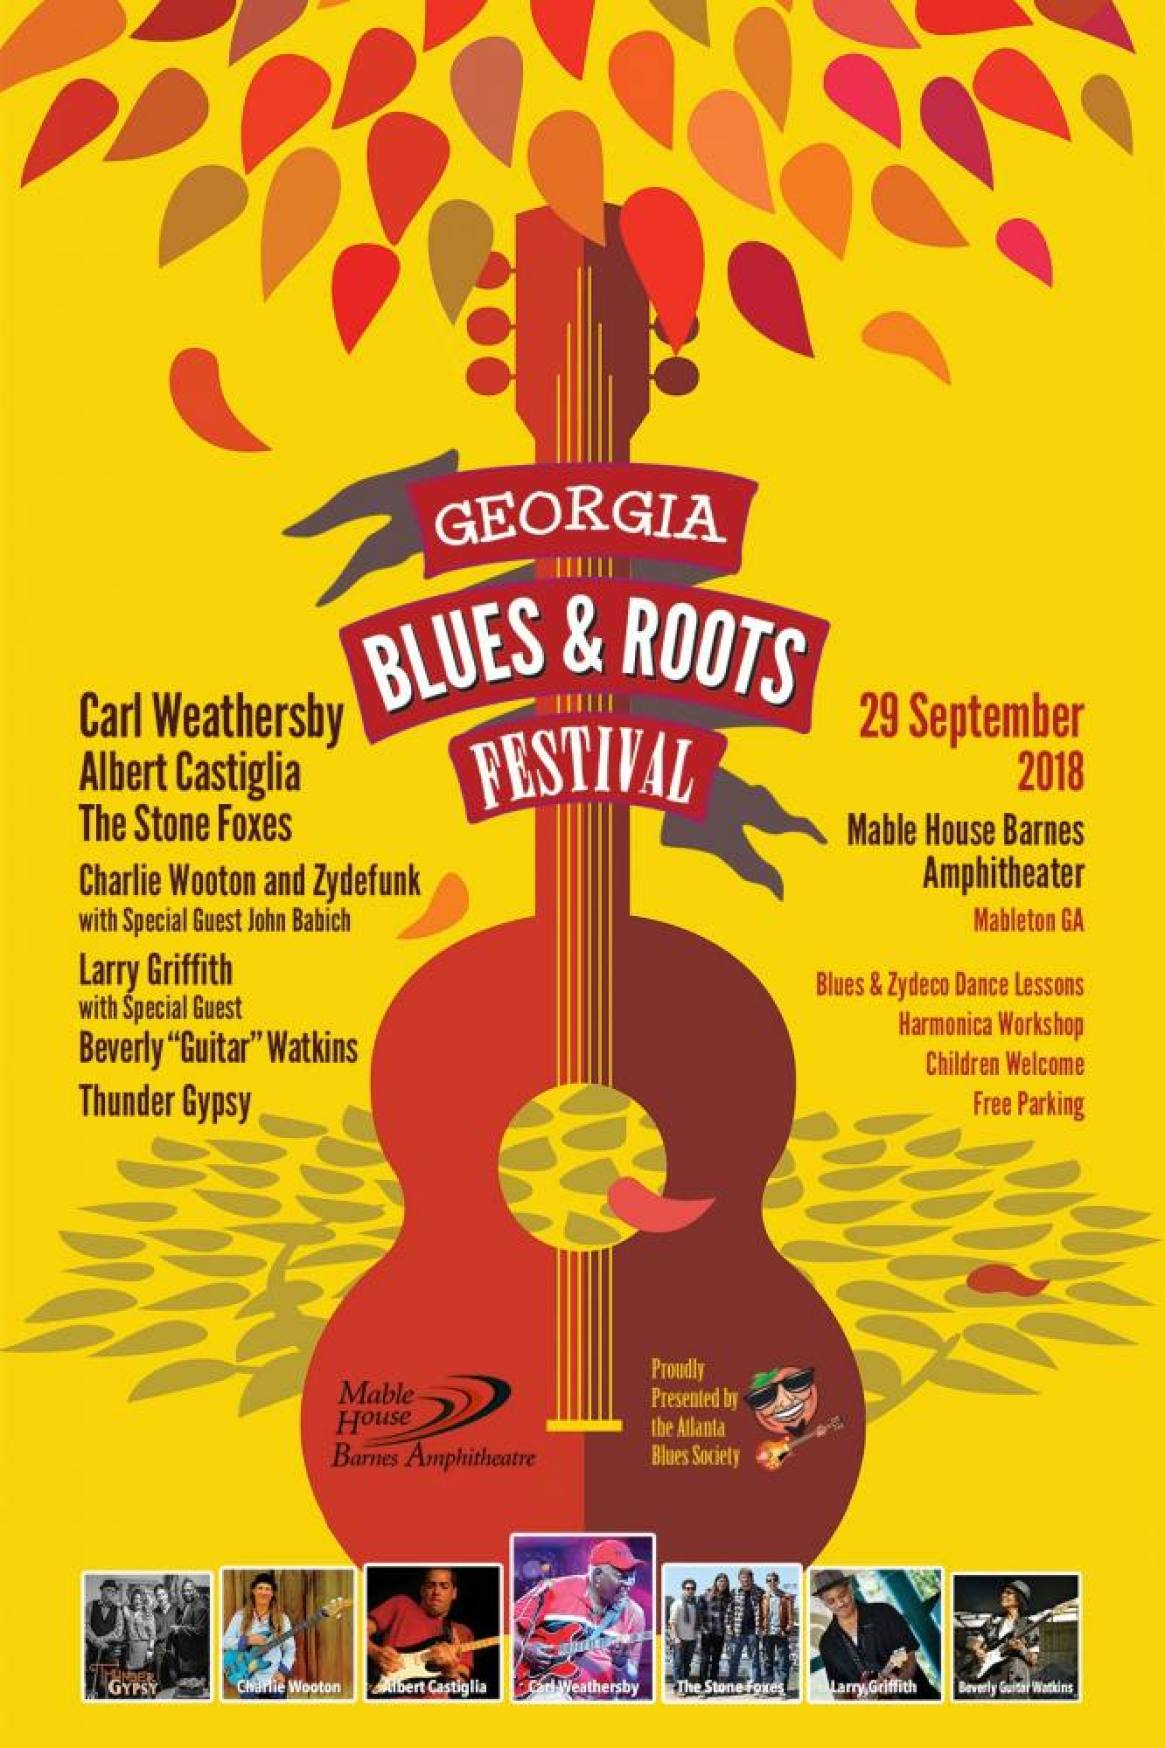 Georgia Blues and Roots Festival 2018!